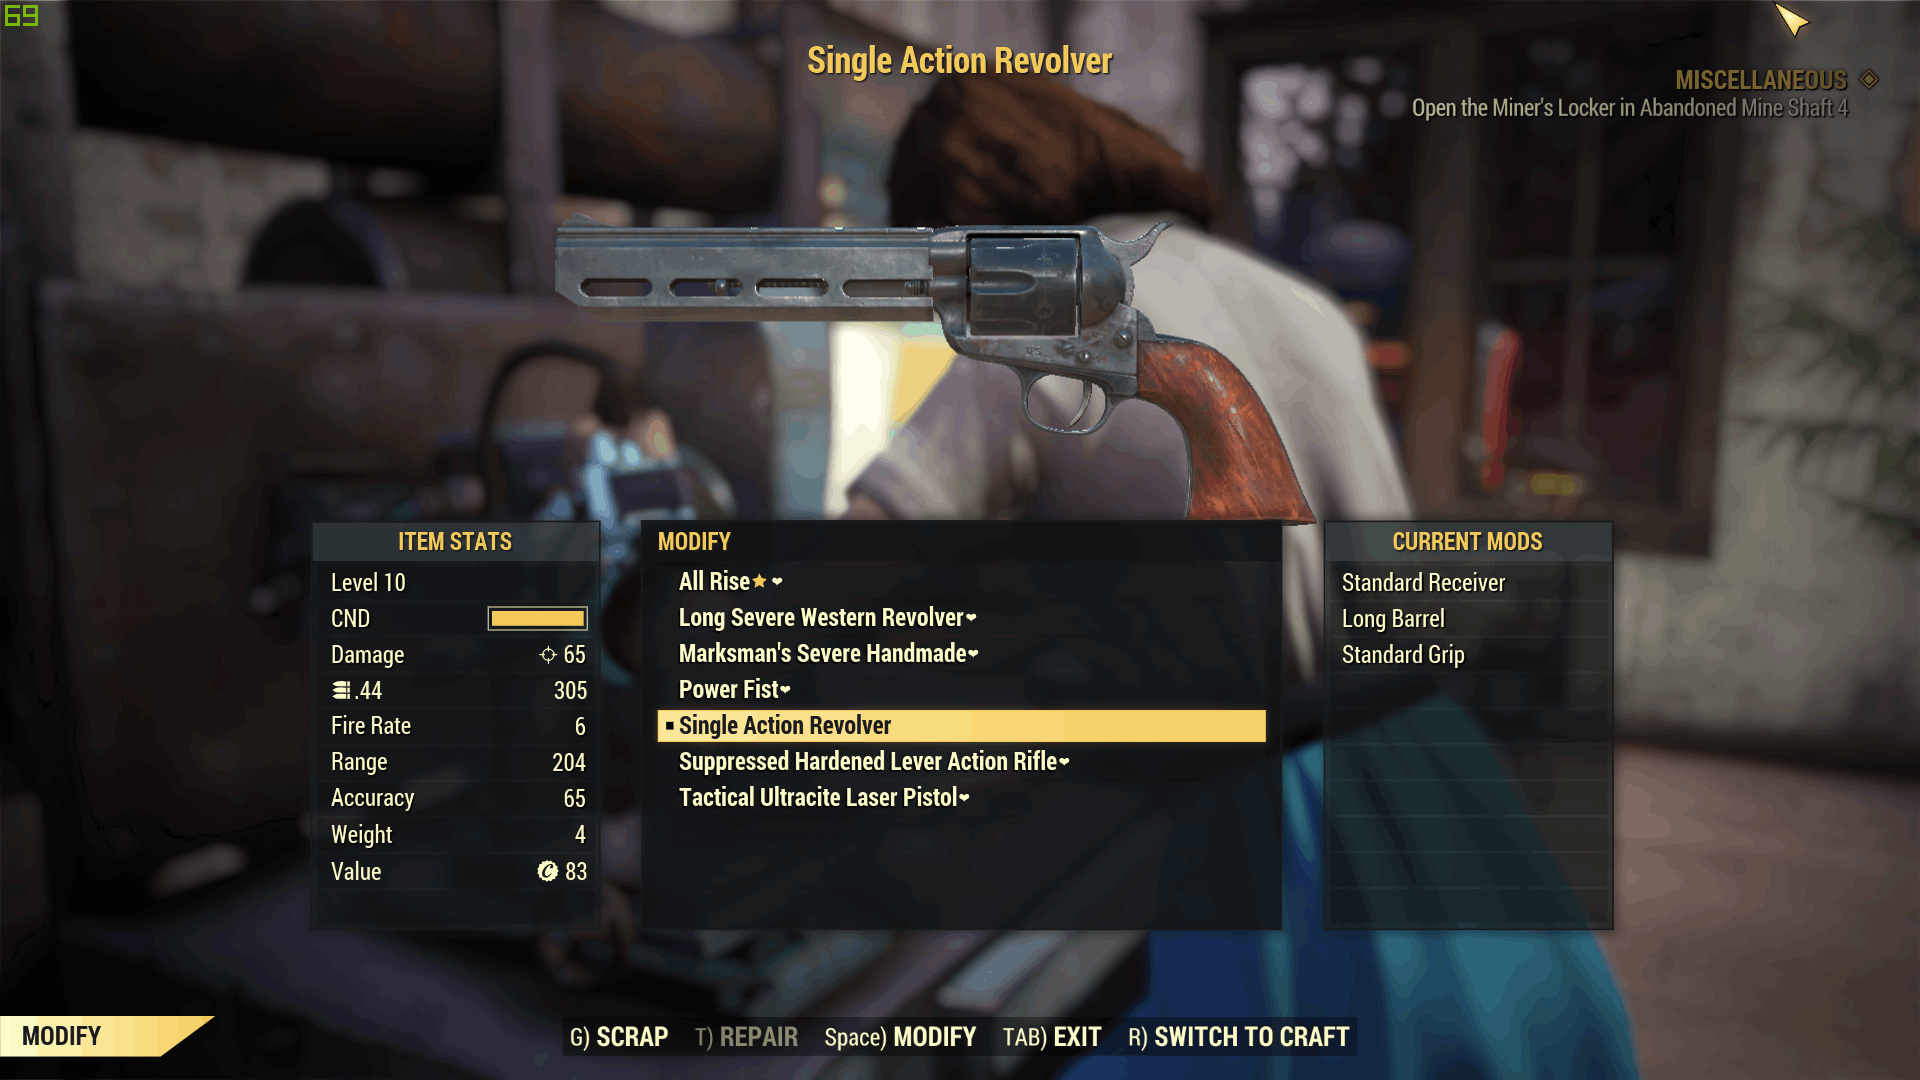 Bull Barrel Replacement for Revolvers Mod - Fallout 76 Mods